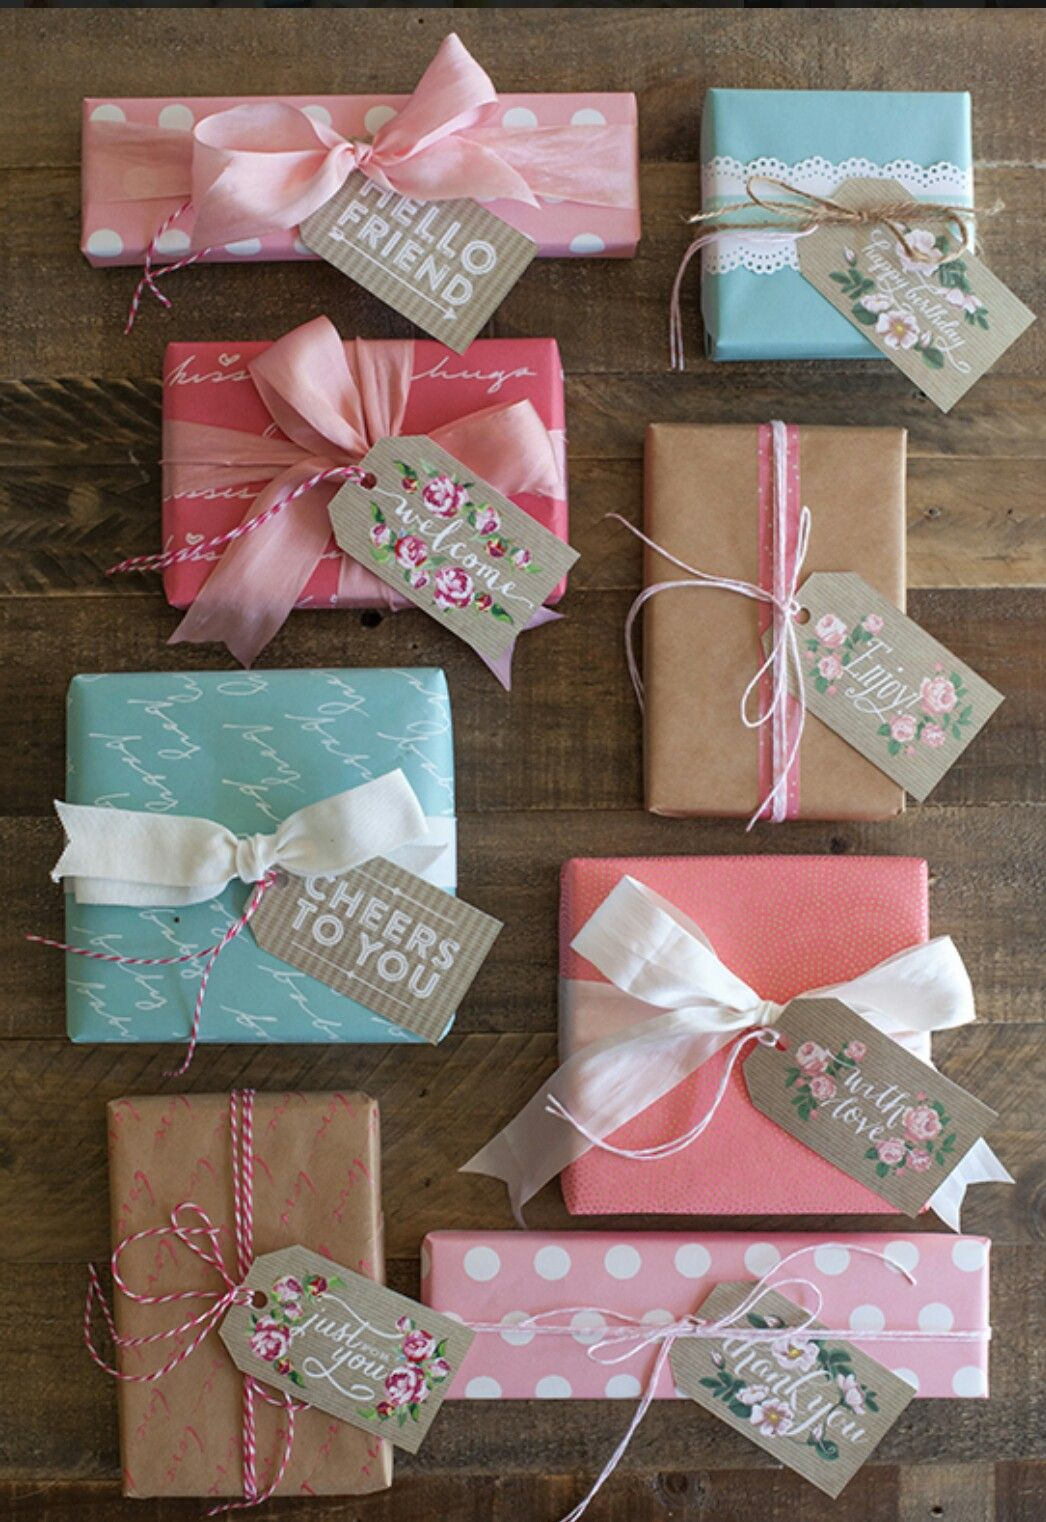 Wrapping Paper Ribbon Tag Ideas Geschenke Schön Verpacken Geschenke Verpacken Geschenke Verpacken Kreativ - Geschenke Verpacken Kreativ